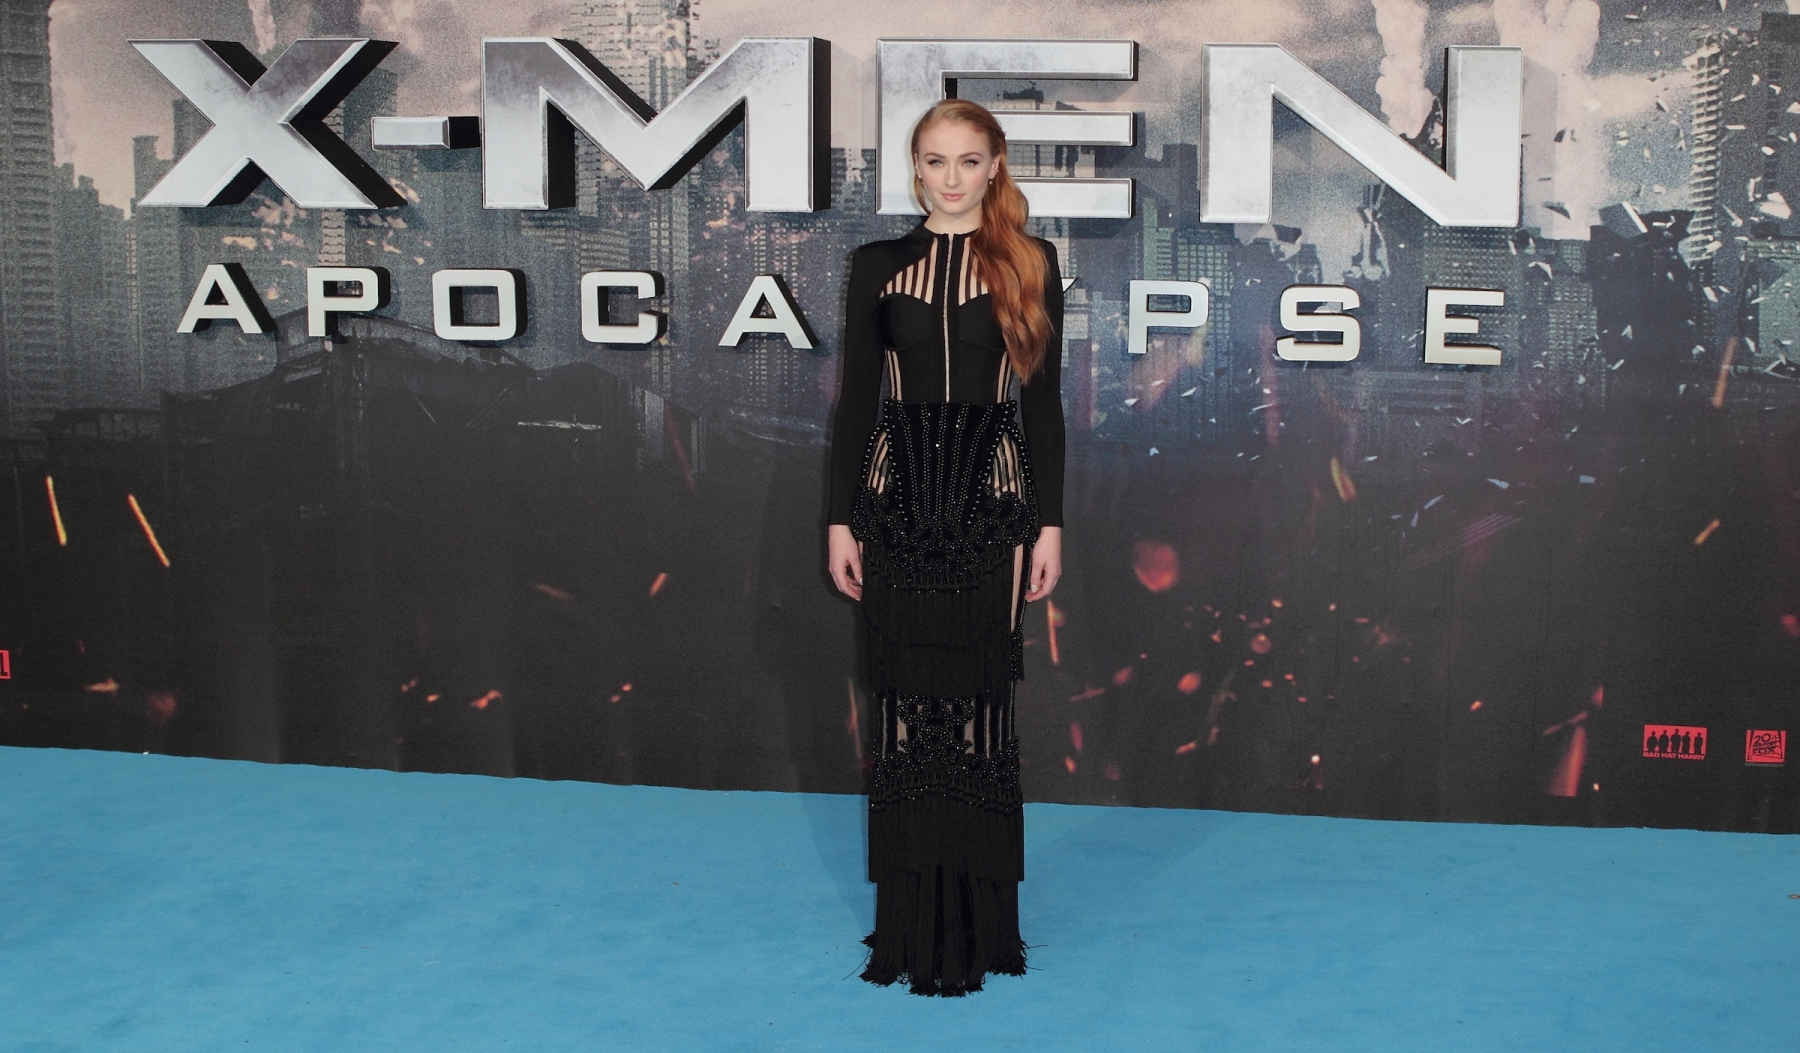 "Sophie Turner attends a Global Fan Screening of 'X-Men Apocalypse' at BFI IMAX on May 9, 2016 in London, England. The trailer for ""X-Men: Dark Phoenix"" starring Turner was released this week. (Photo by Barcroft Images / Barcroft Media via Getty Images)"